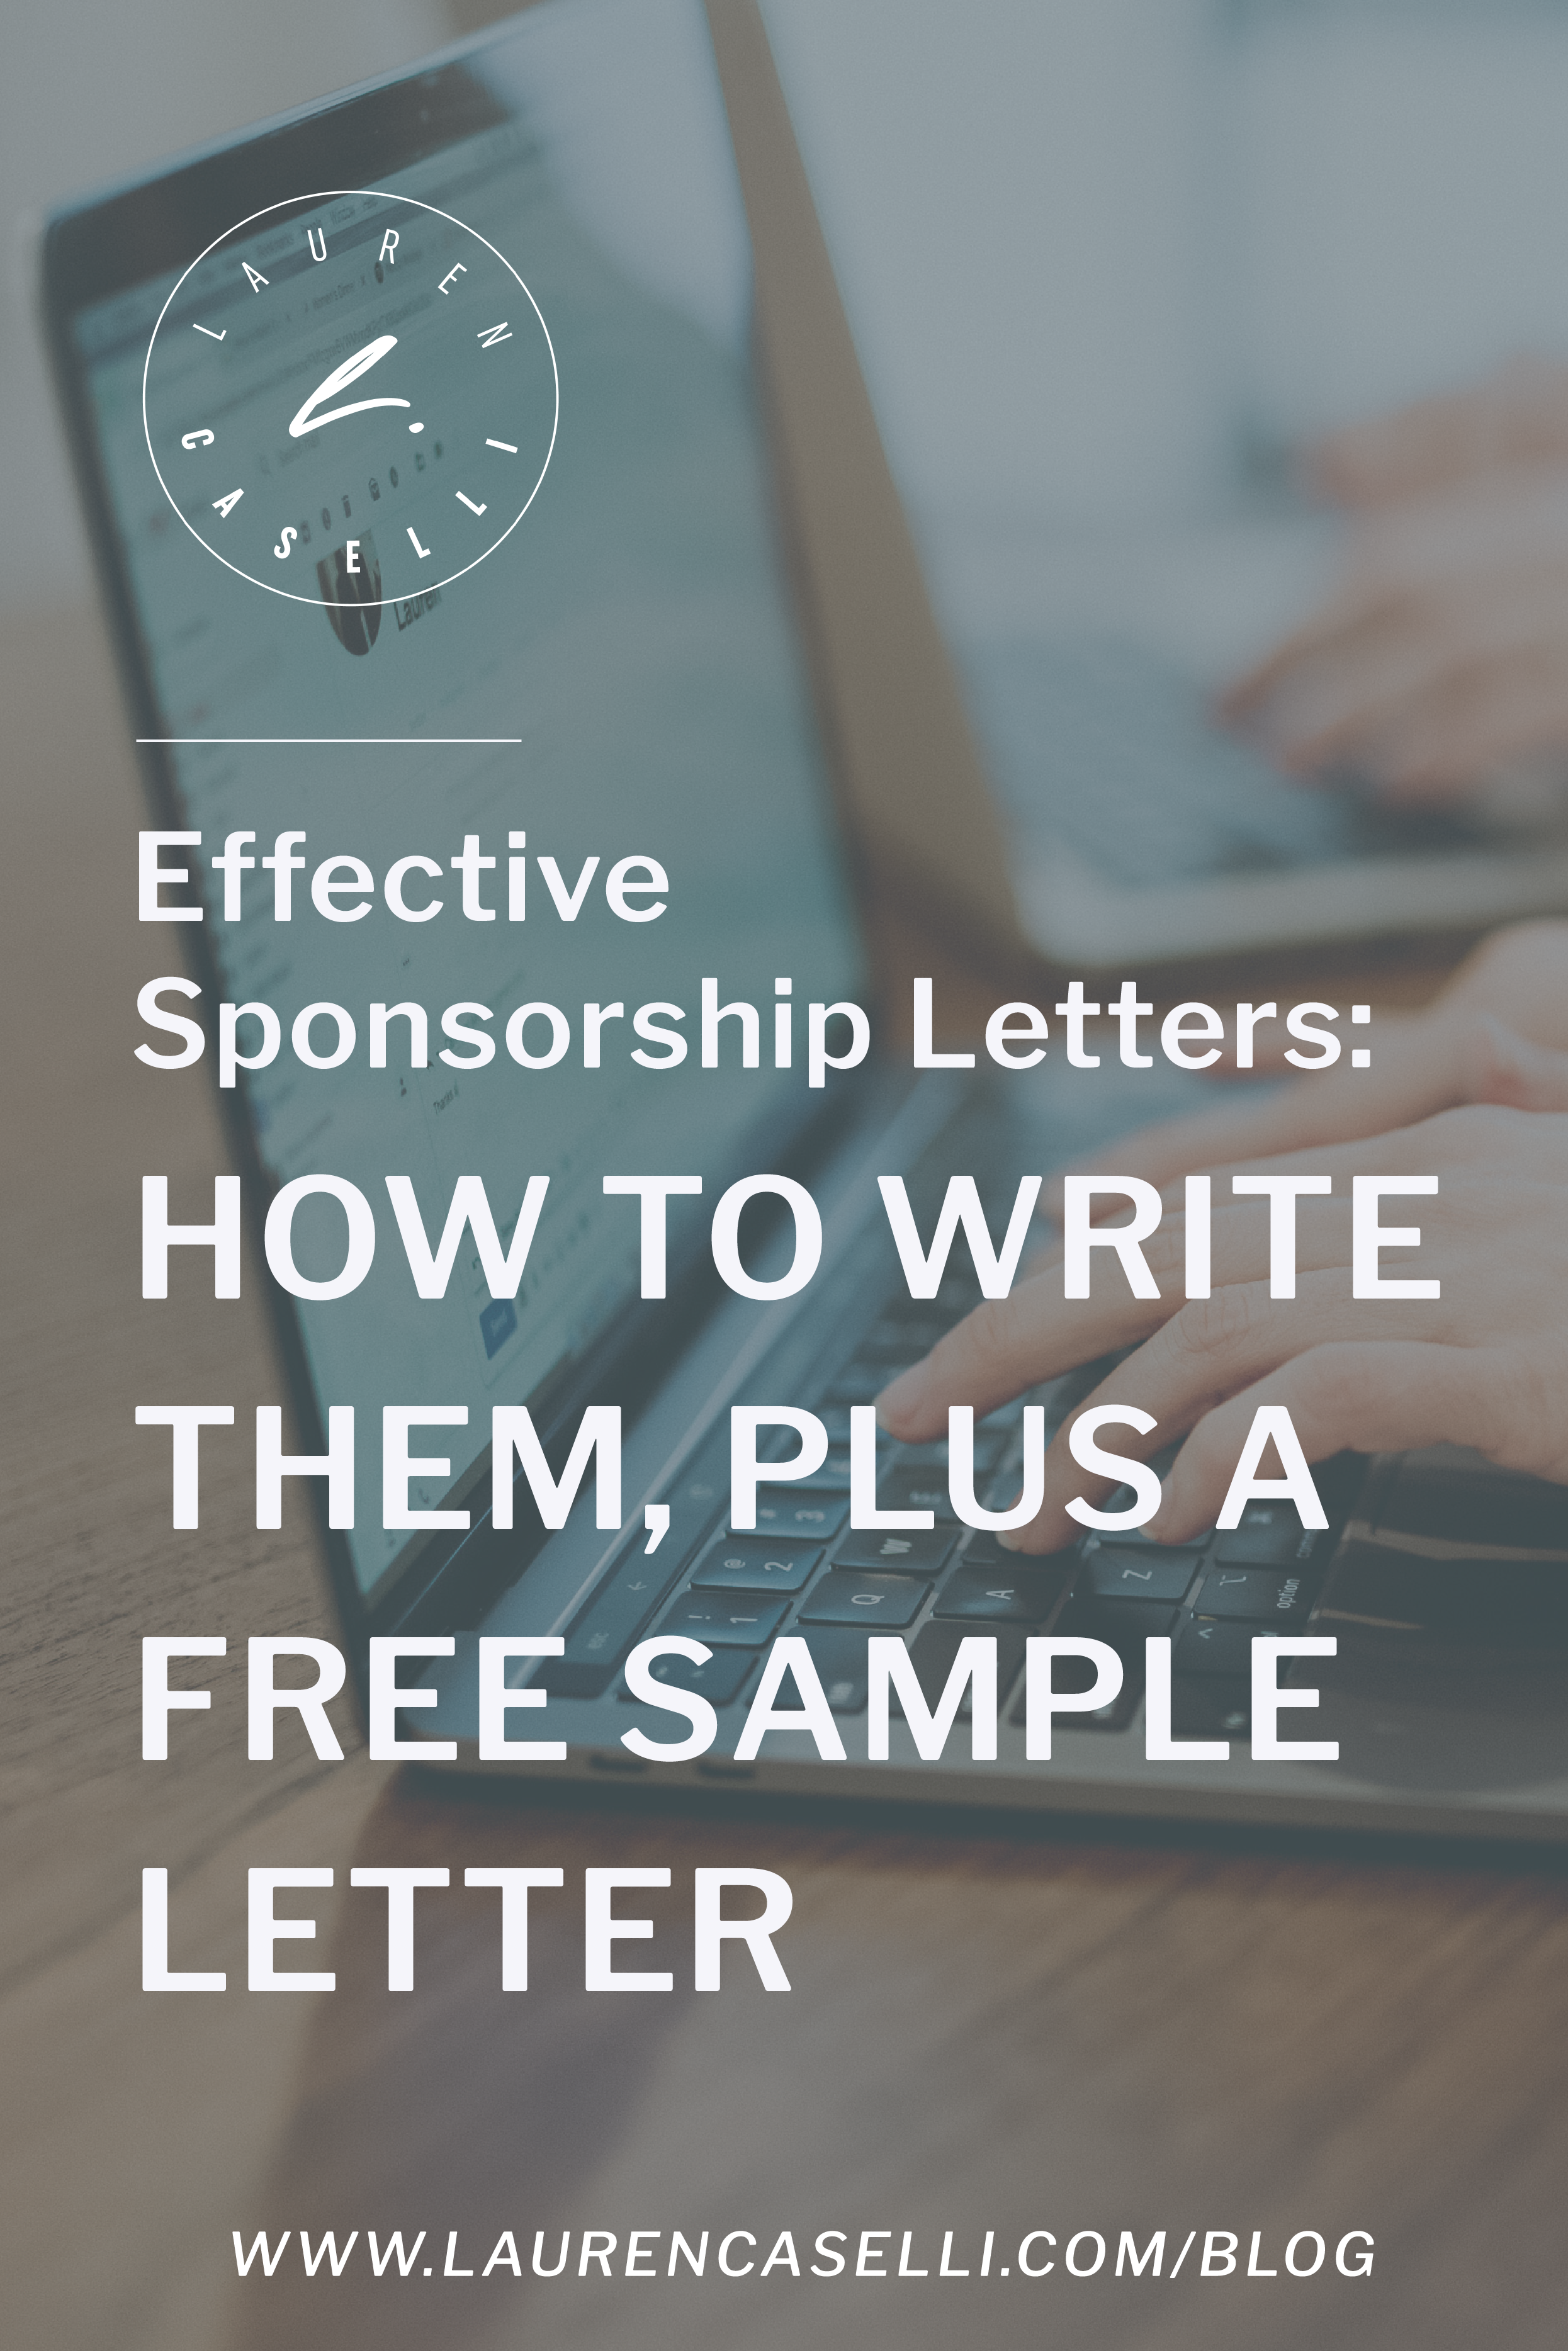 Ever wondered how you can write an effective sponsorship letter? Look no further!